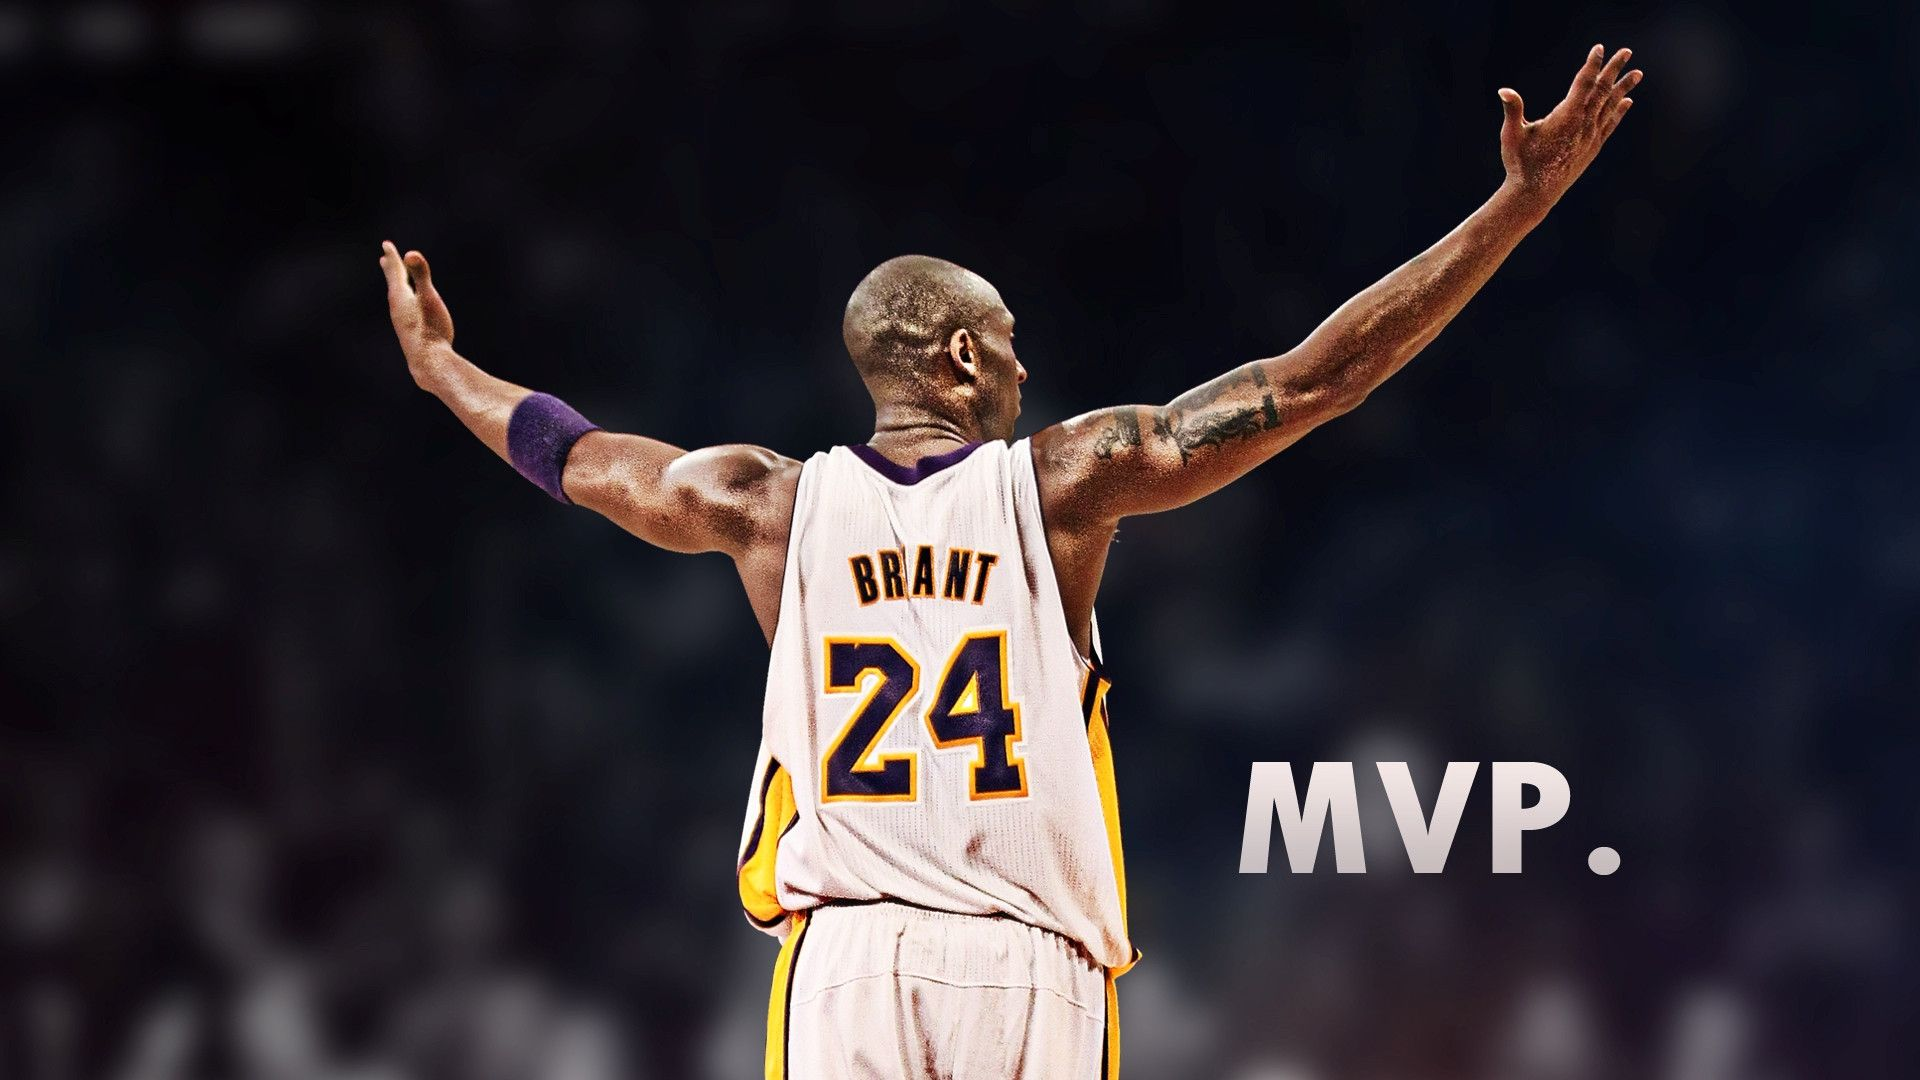 20 Facts You Didn't Know About Kobe Bryant